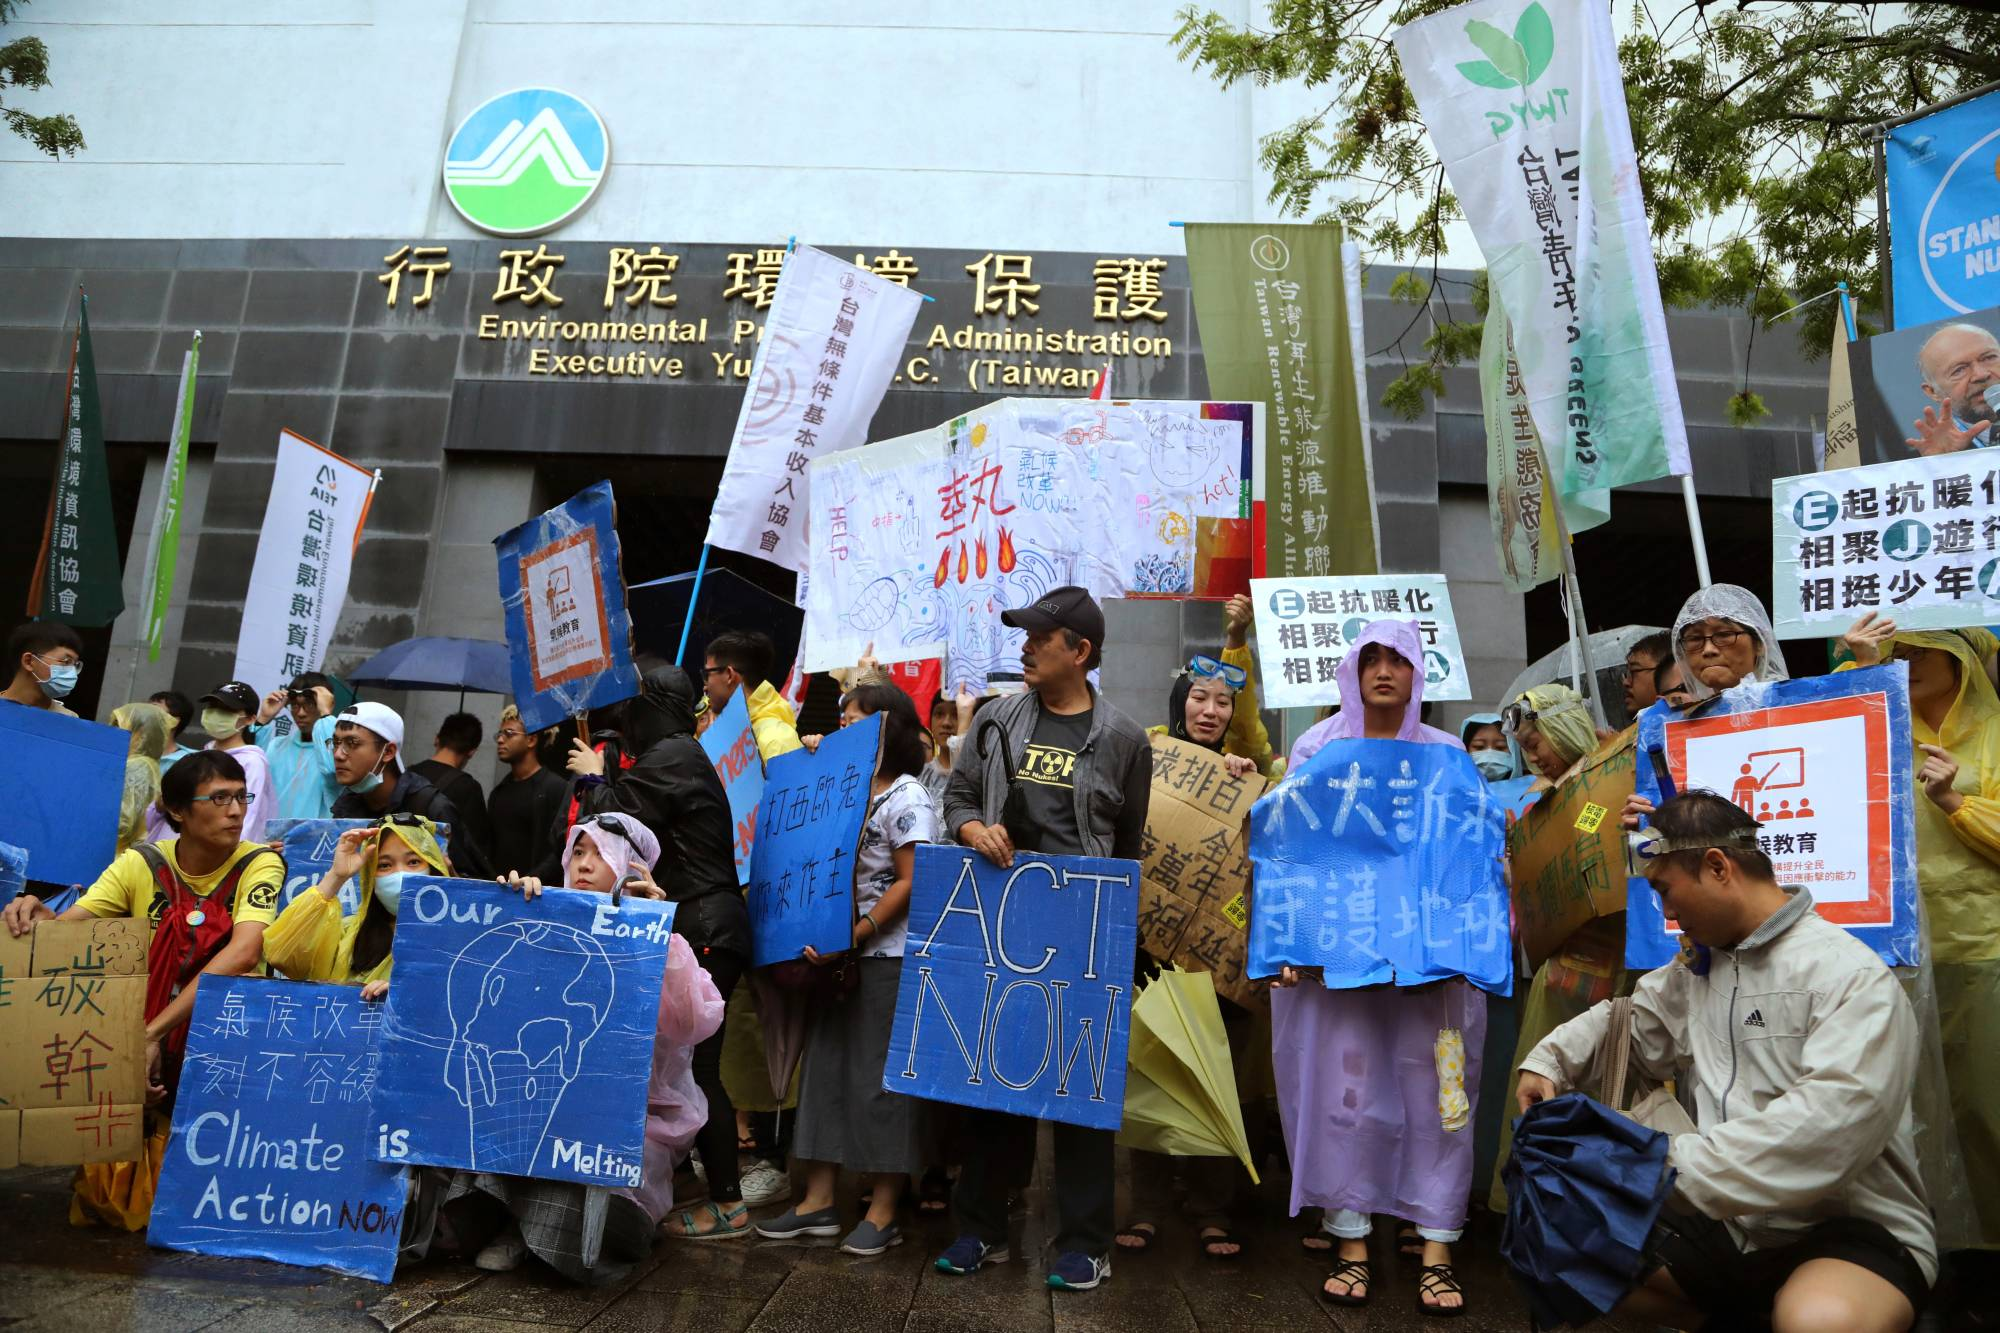 Climate activists gather at the building of Taiwan's Environmental Protection Administration during a parade to call for climate change awareness, in Taipei on Sunday. | REUTERS